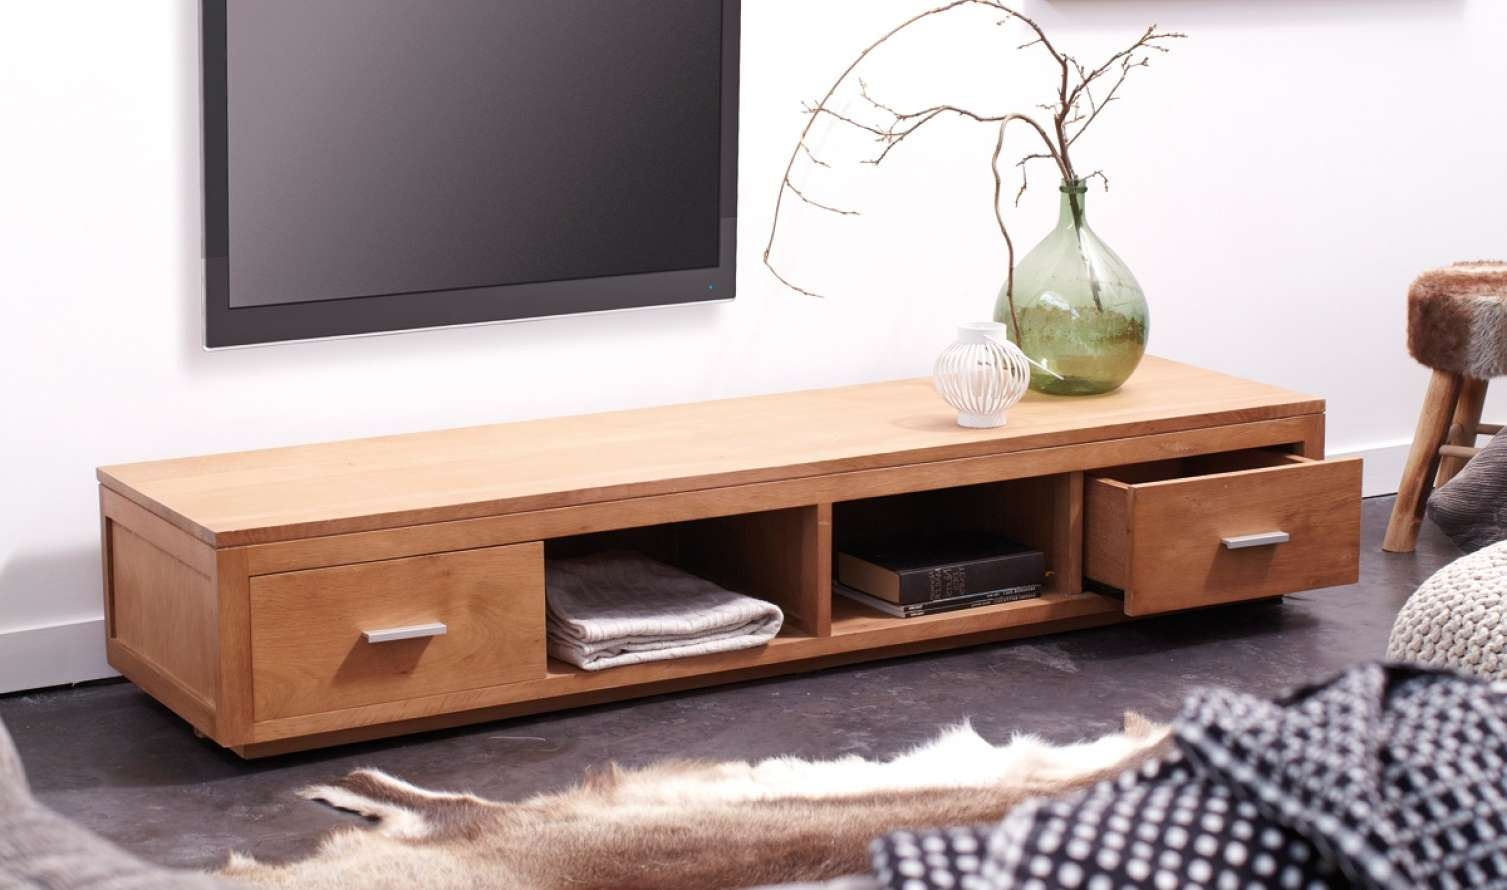 Tv : Horrible Oak Tv Cabinet With Fireplace Delight Oak Tv Within Harveys Wooden Tv Stands (View 8 of 15)